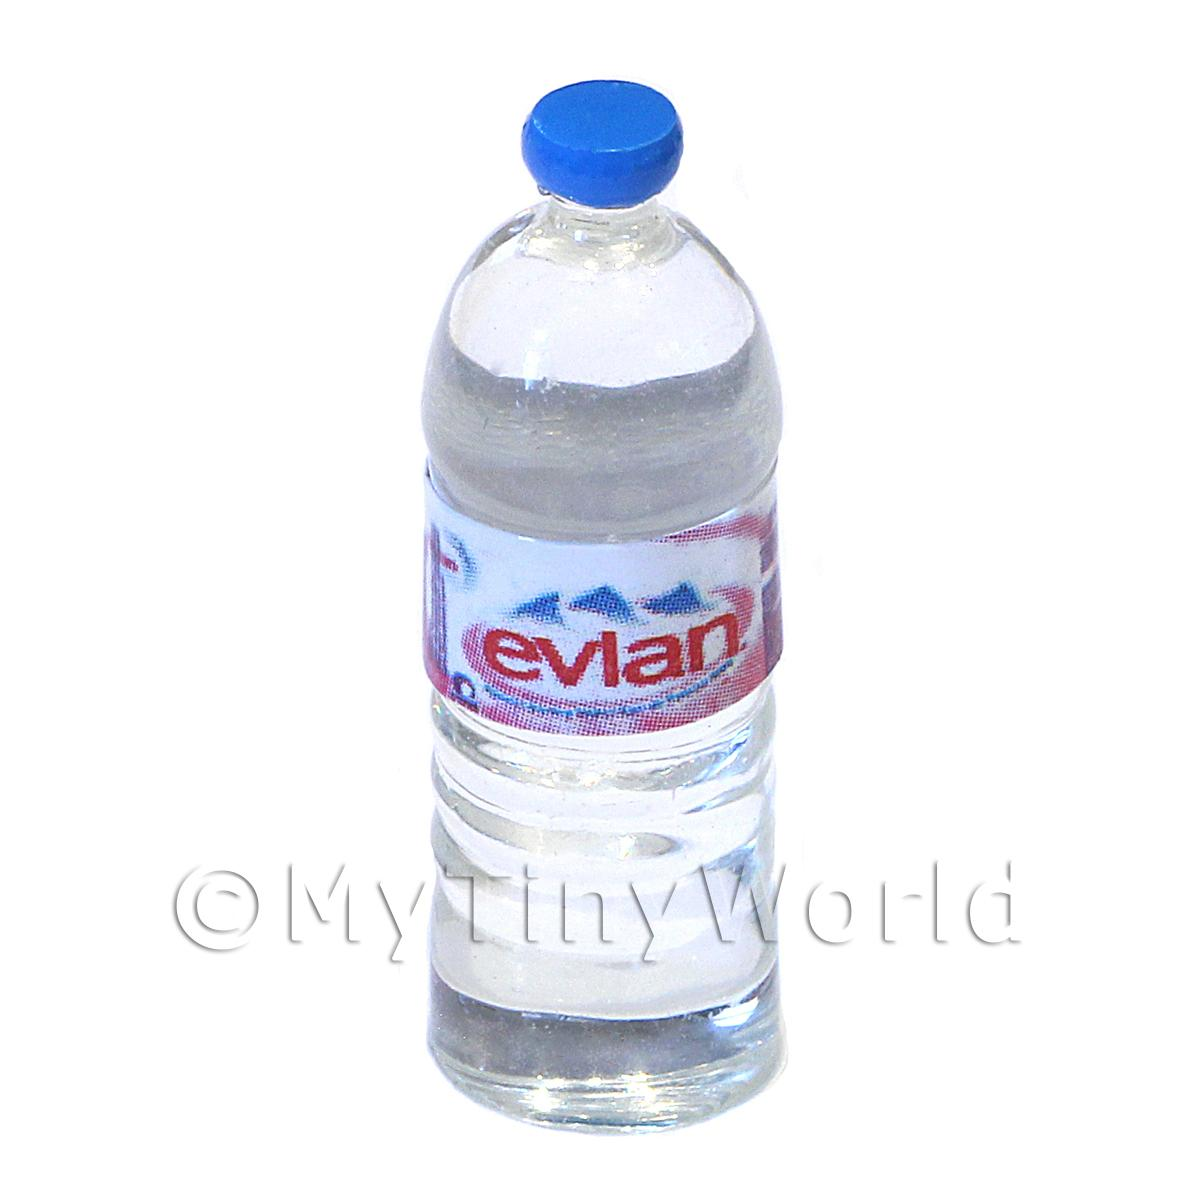 Dolls House Miniature  | Dolls House Miniature Large Evian Brand Round Water Bottle